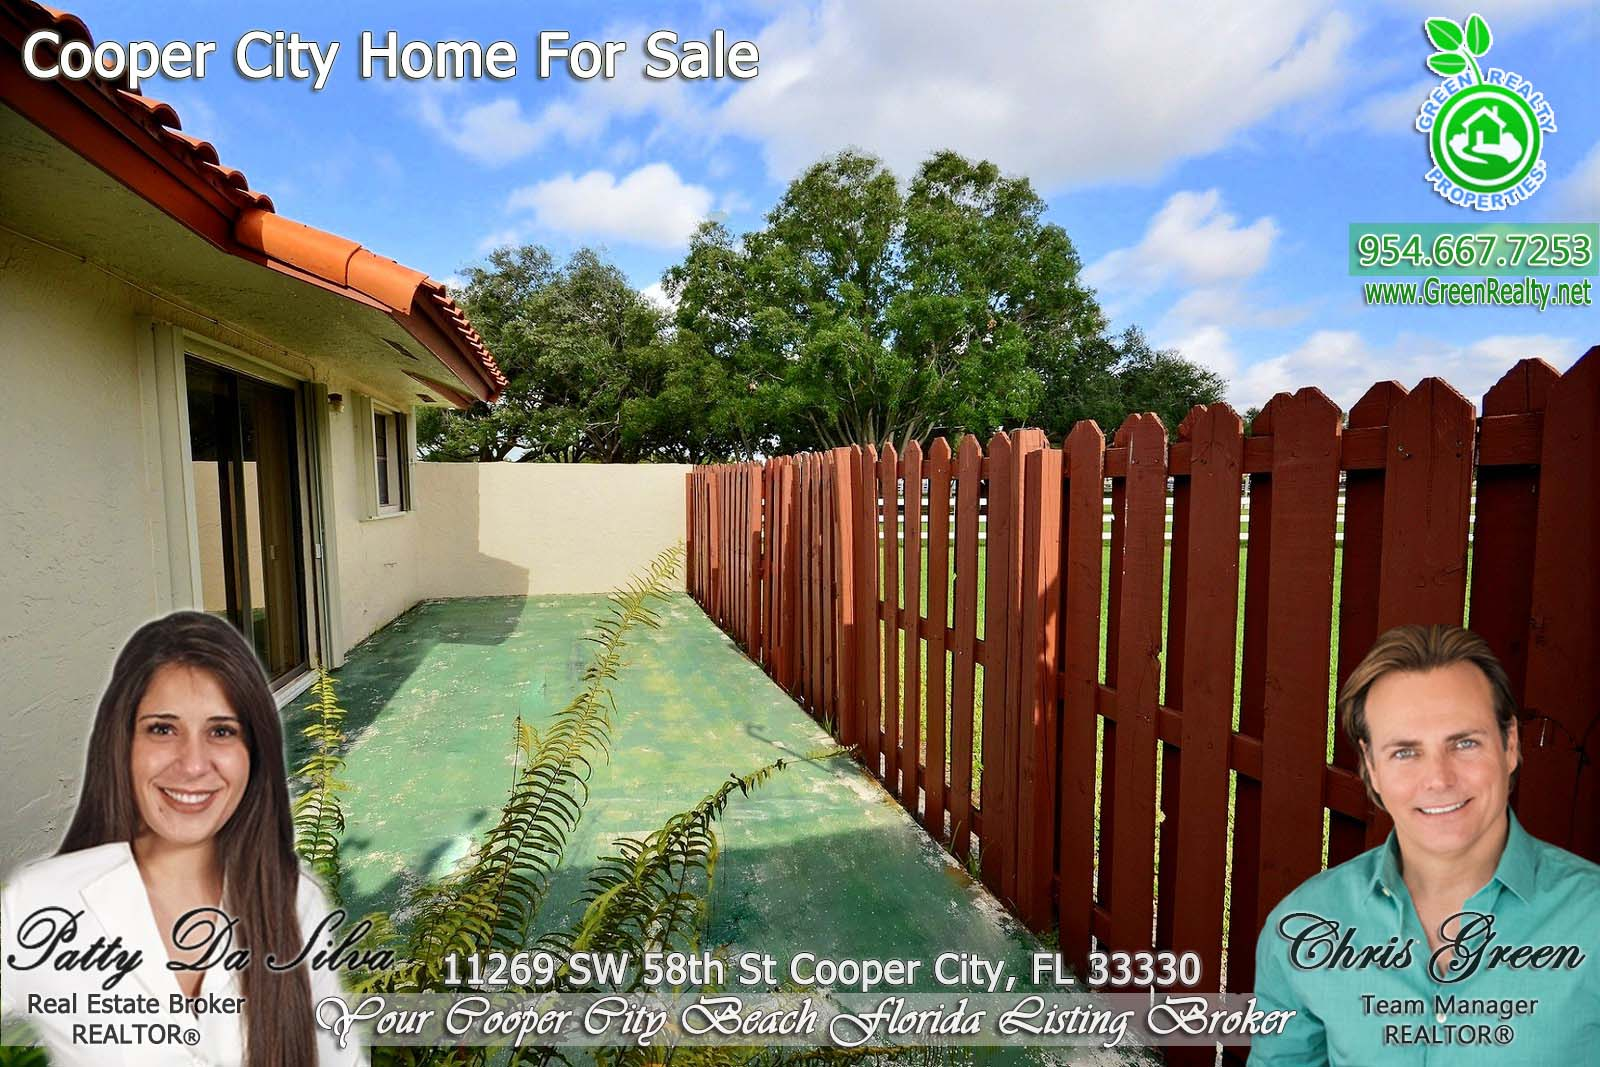 21 Cooper City Real Estate - Villas (15)